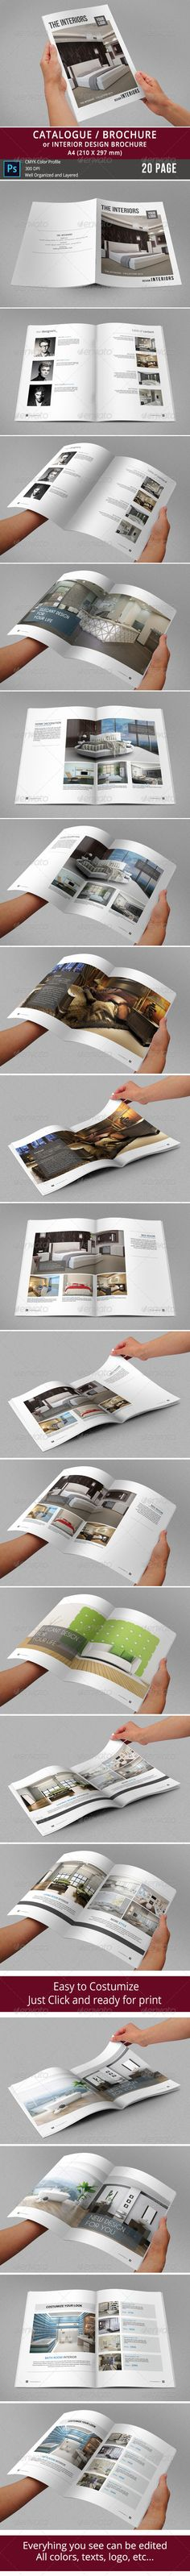 This 20 page minimal brochure template is for designers working on interior design catalogues, product catalogues, product/graphic